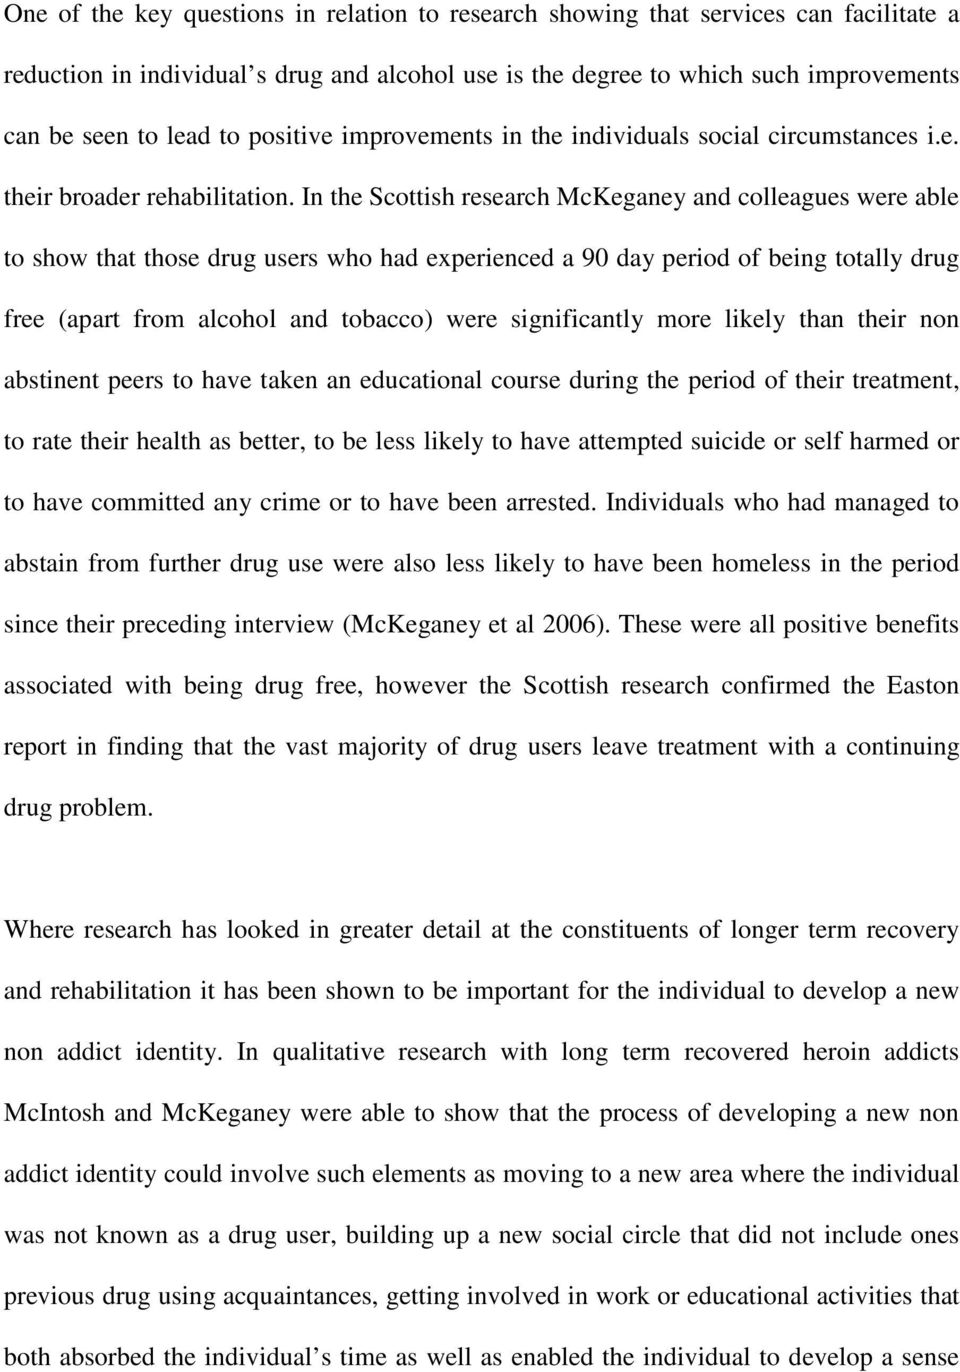 In the Scottish research McKeganey and colleagues were able to show that those drug users who had experienced a 90 day period of being totally drug free (apart from alcohol and tobacco) were